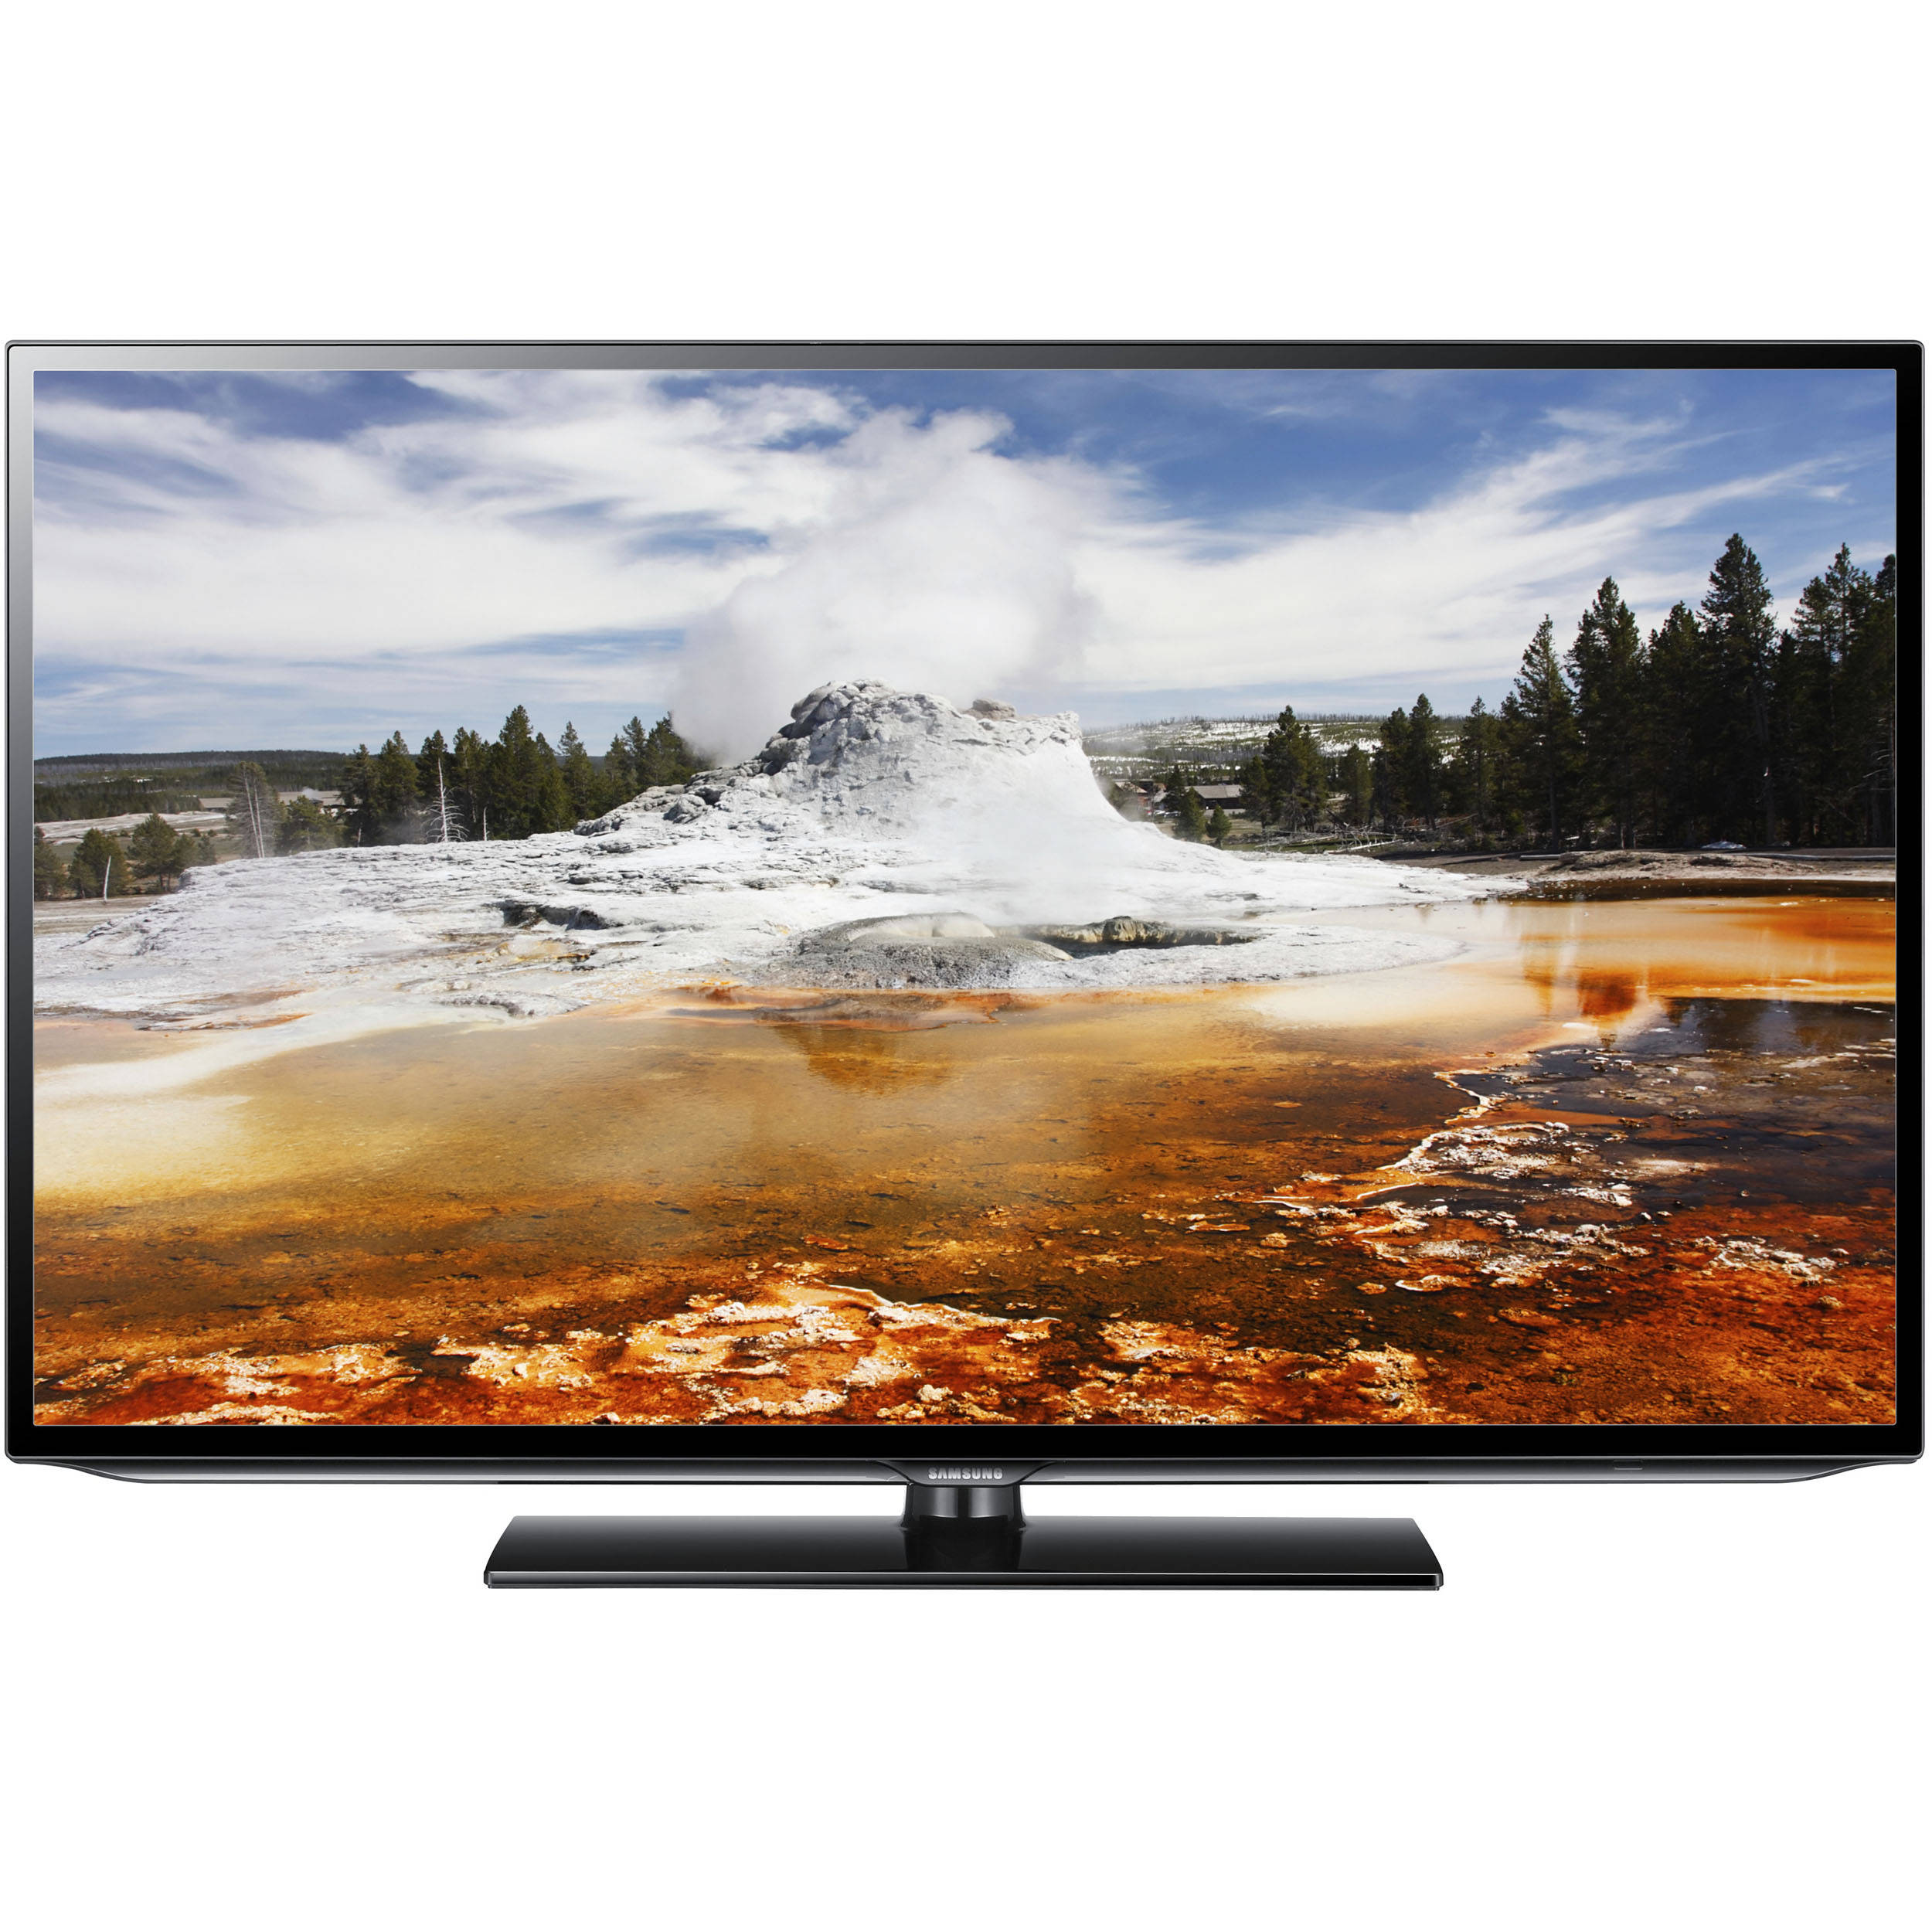 Samsung UN32EH5000F LED TV Drivers for PC